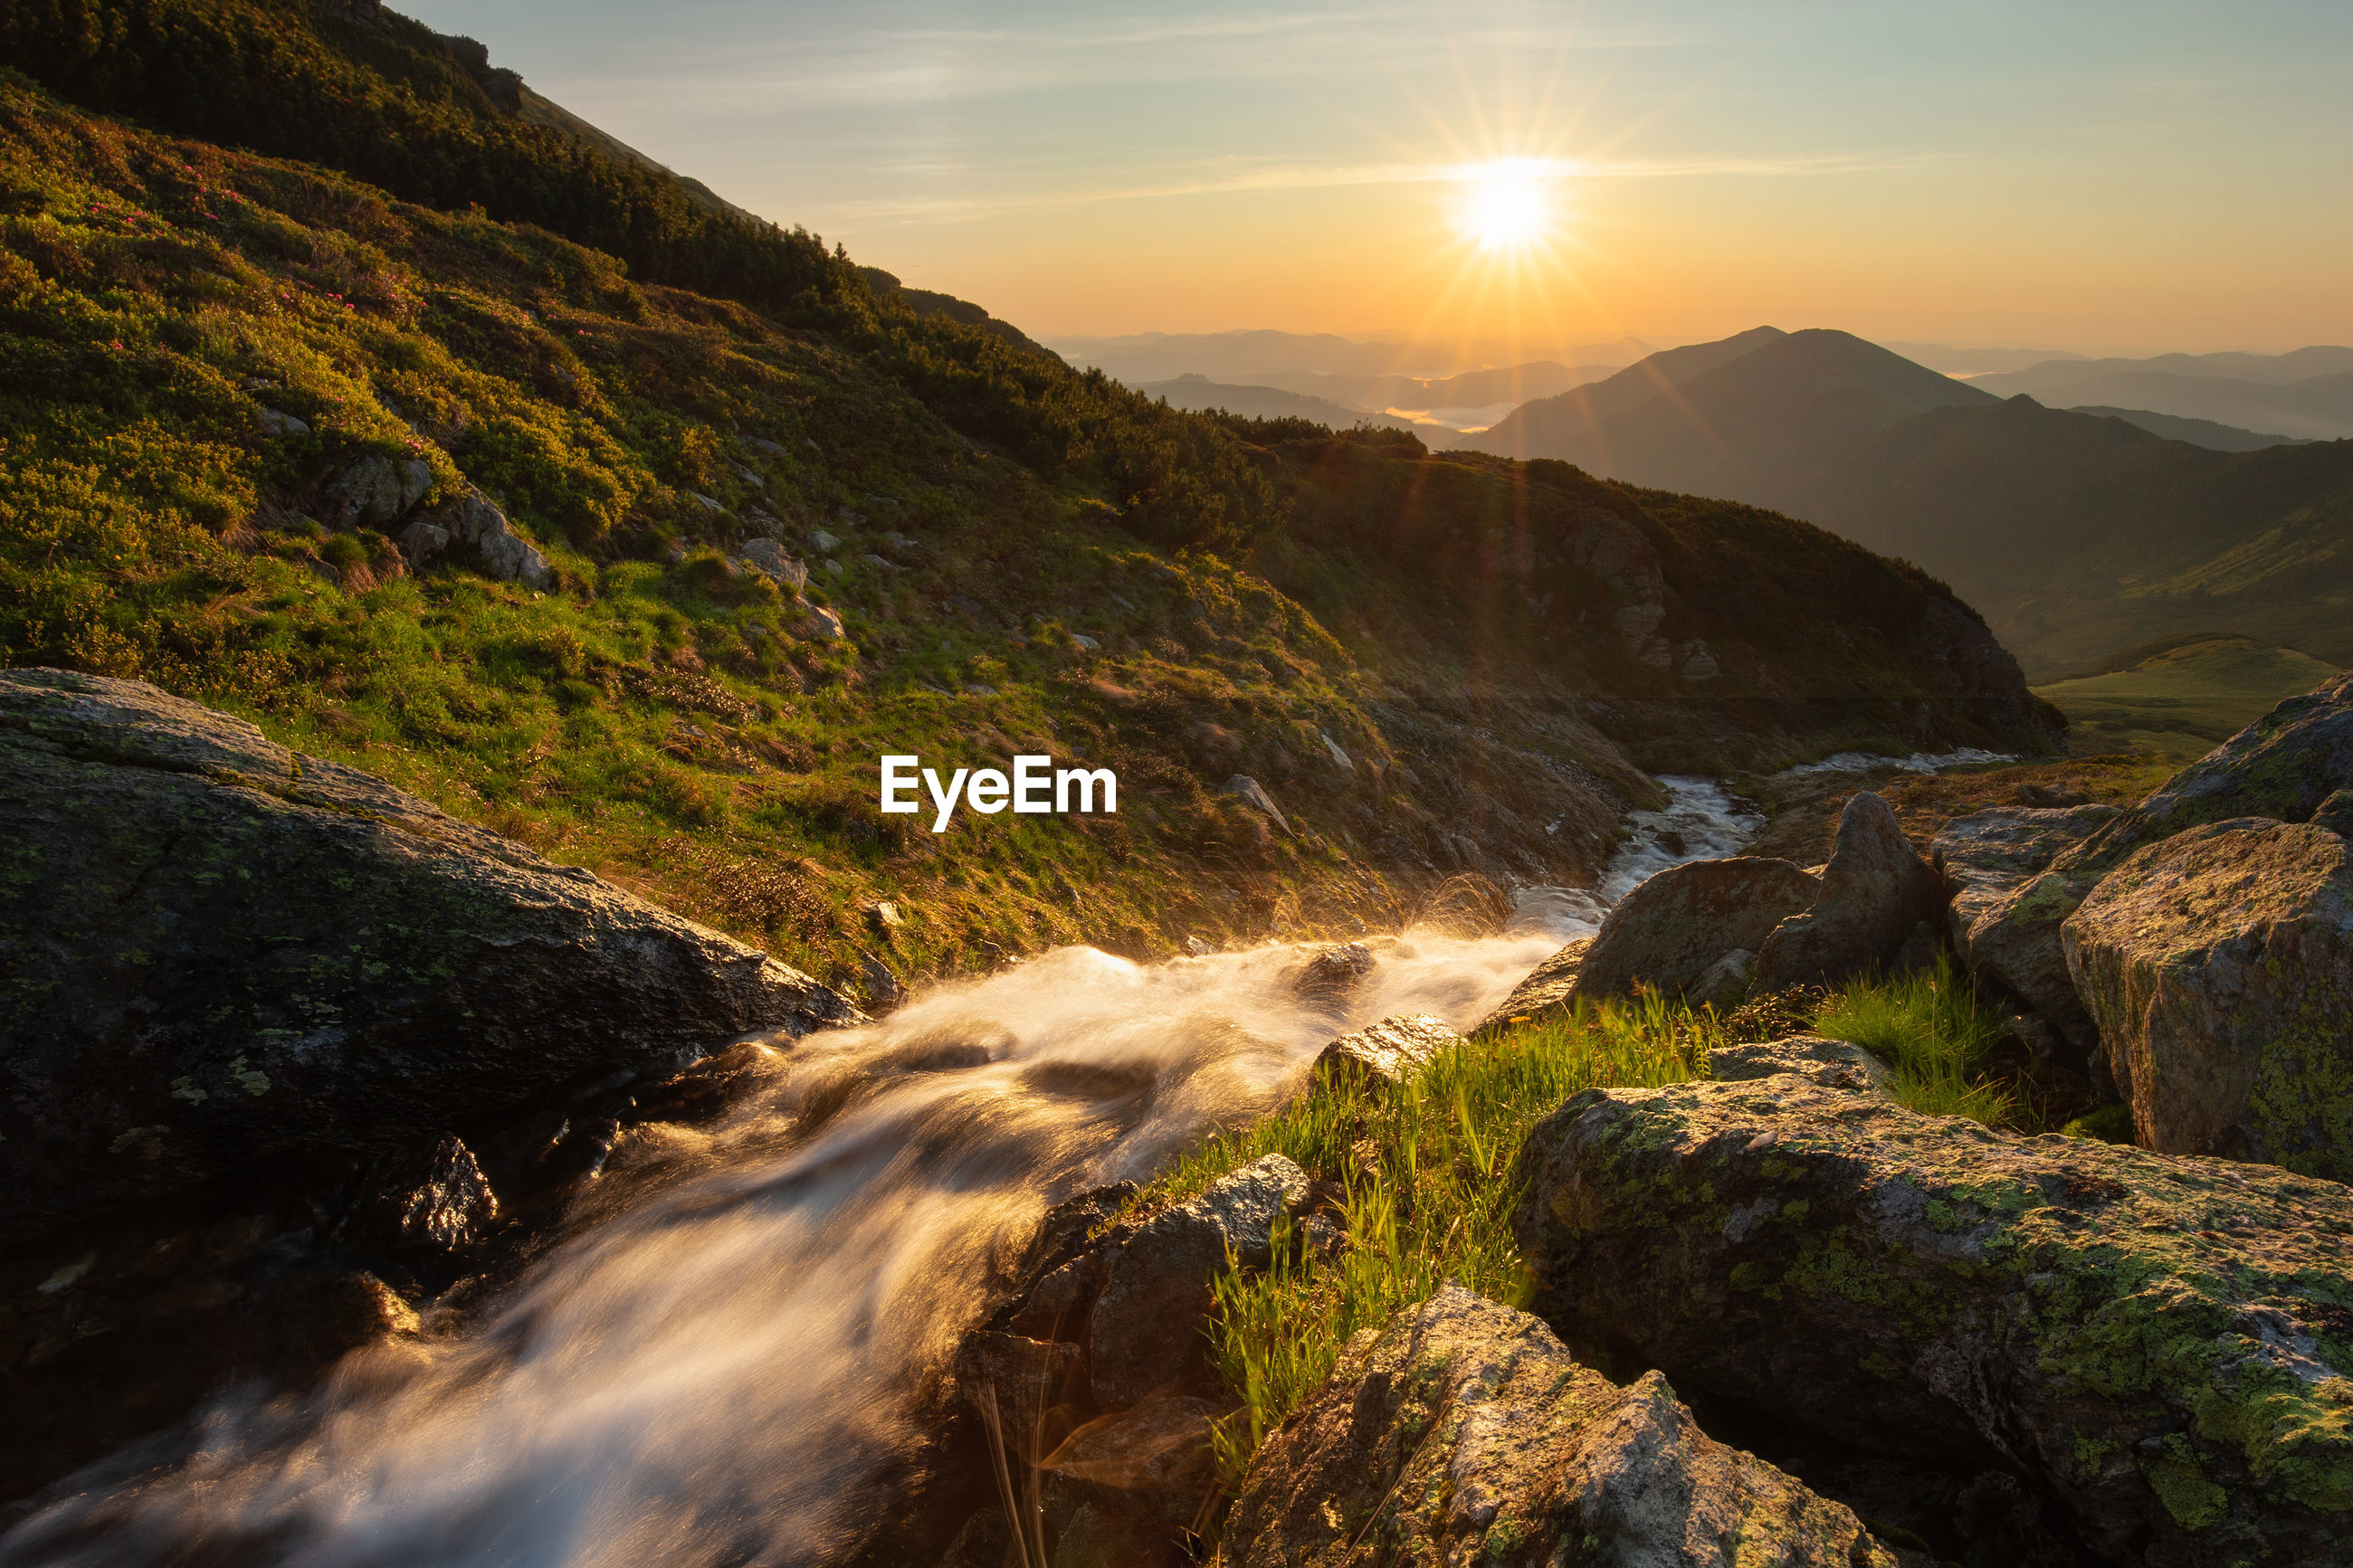 Scenic view of stream amidst rocks against sky during sunrise in rodnei mountains